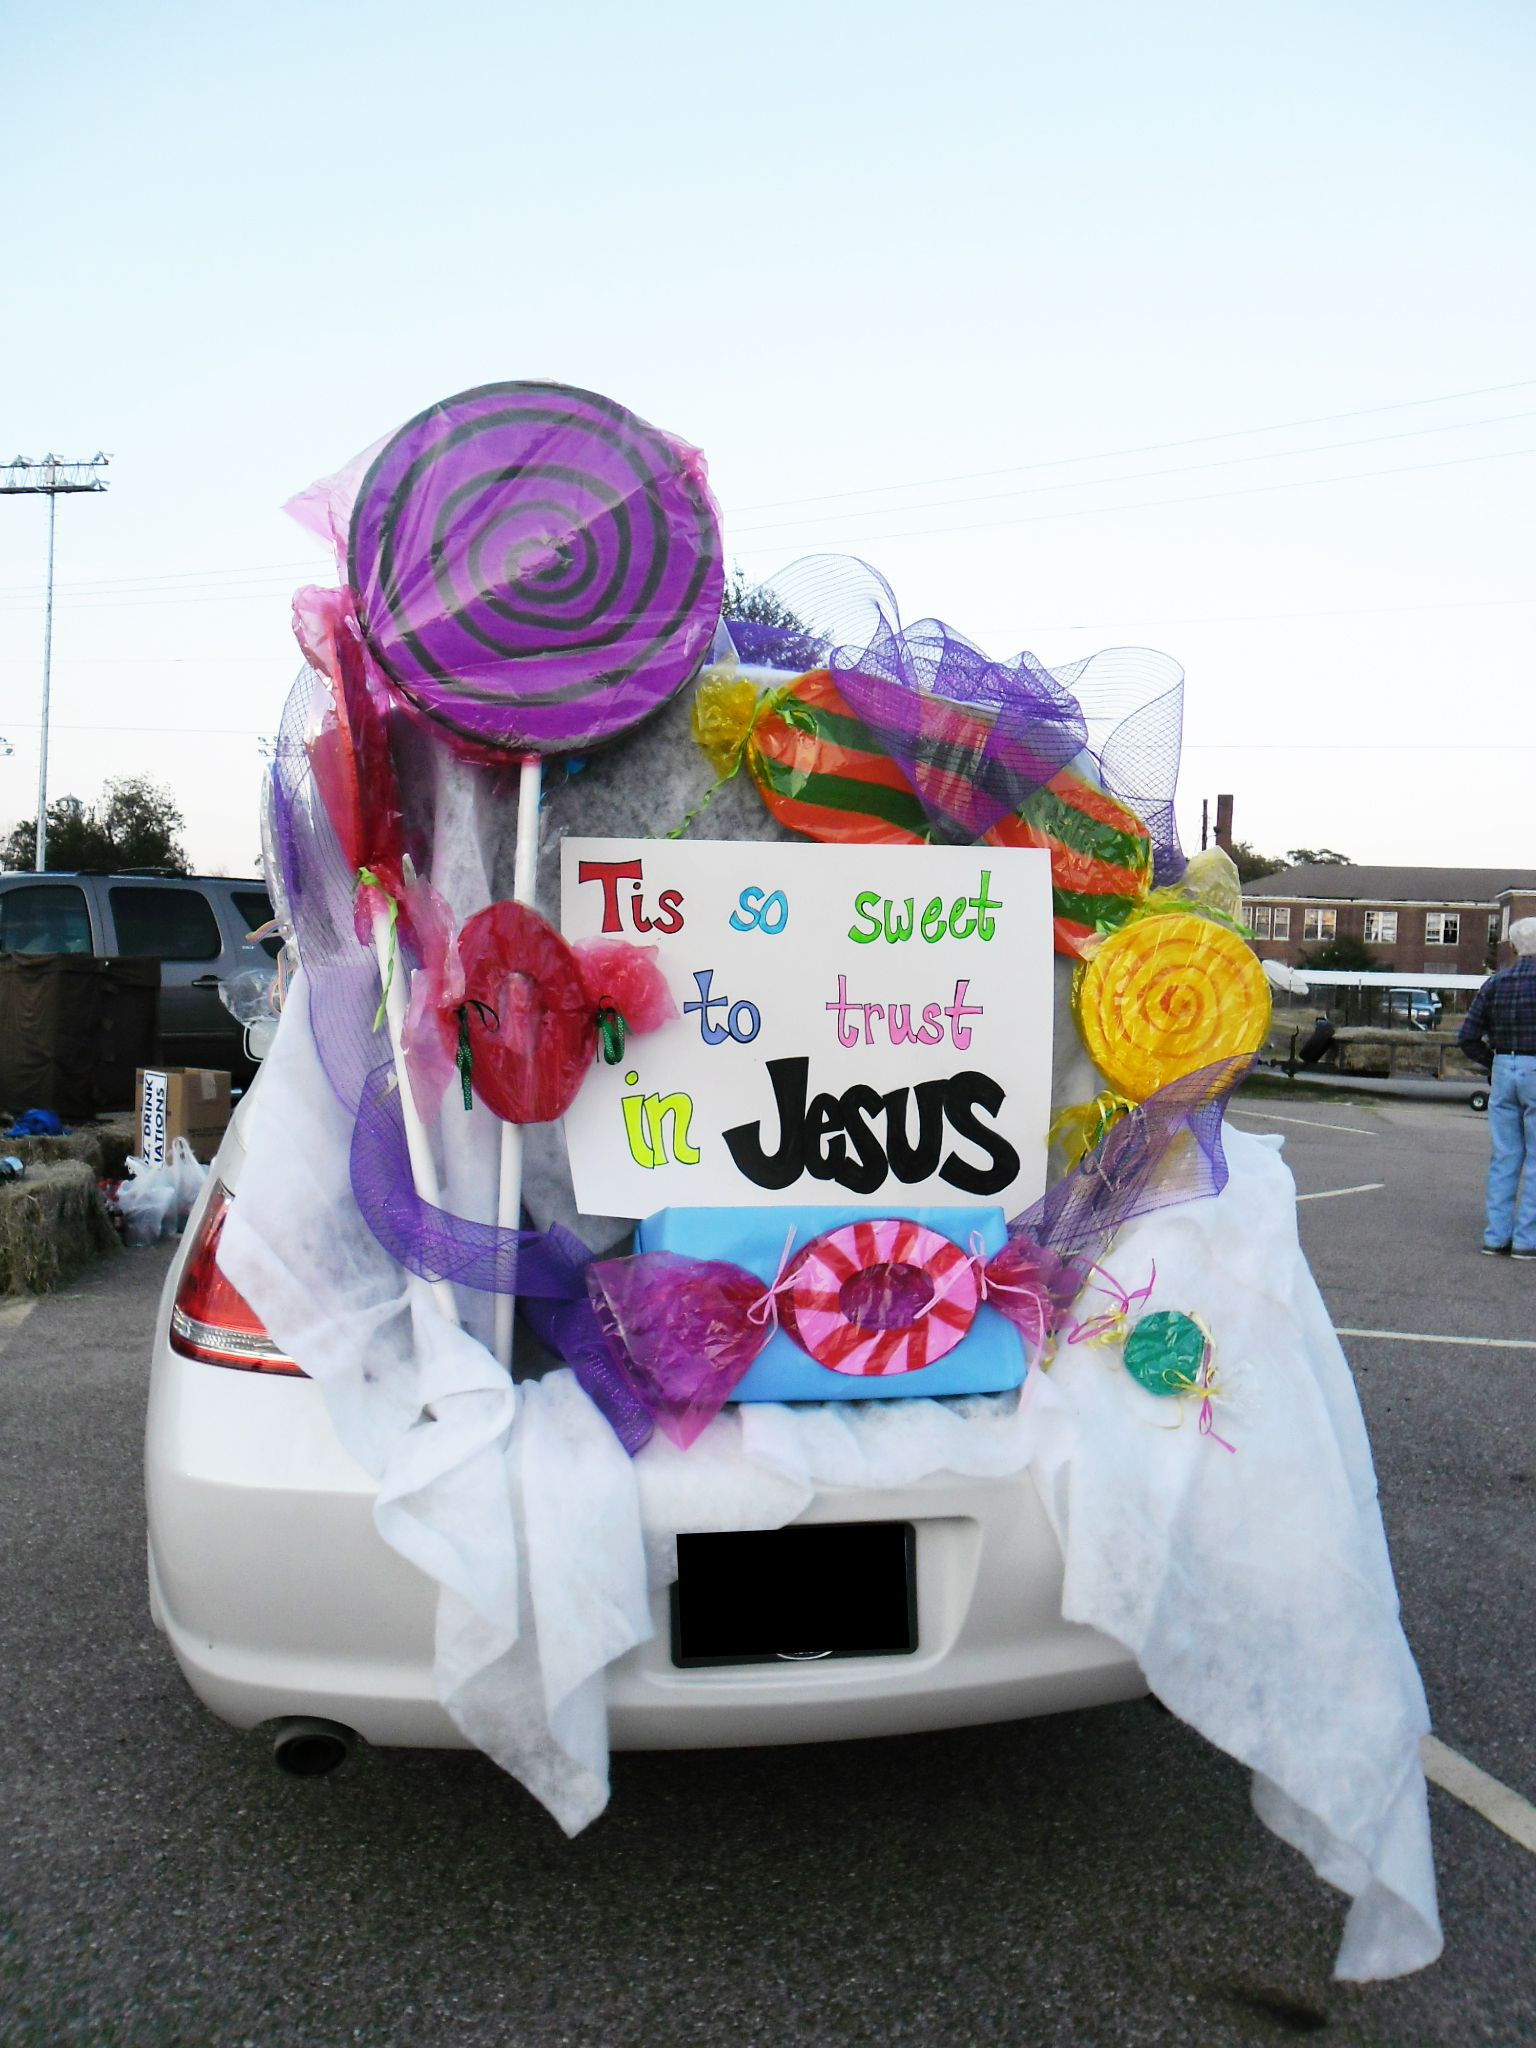 Church Halloween Party Ideas  Here are 10 fun ways to decorate your trunk for your